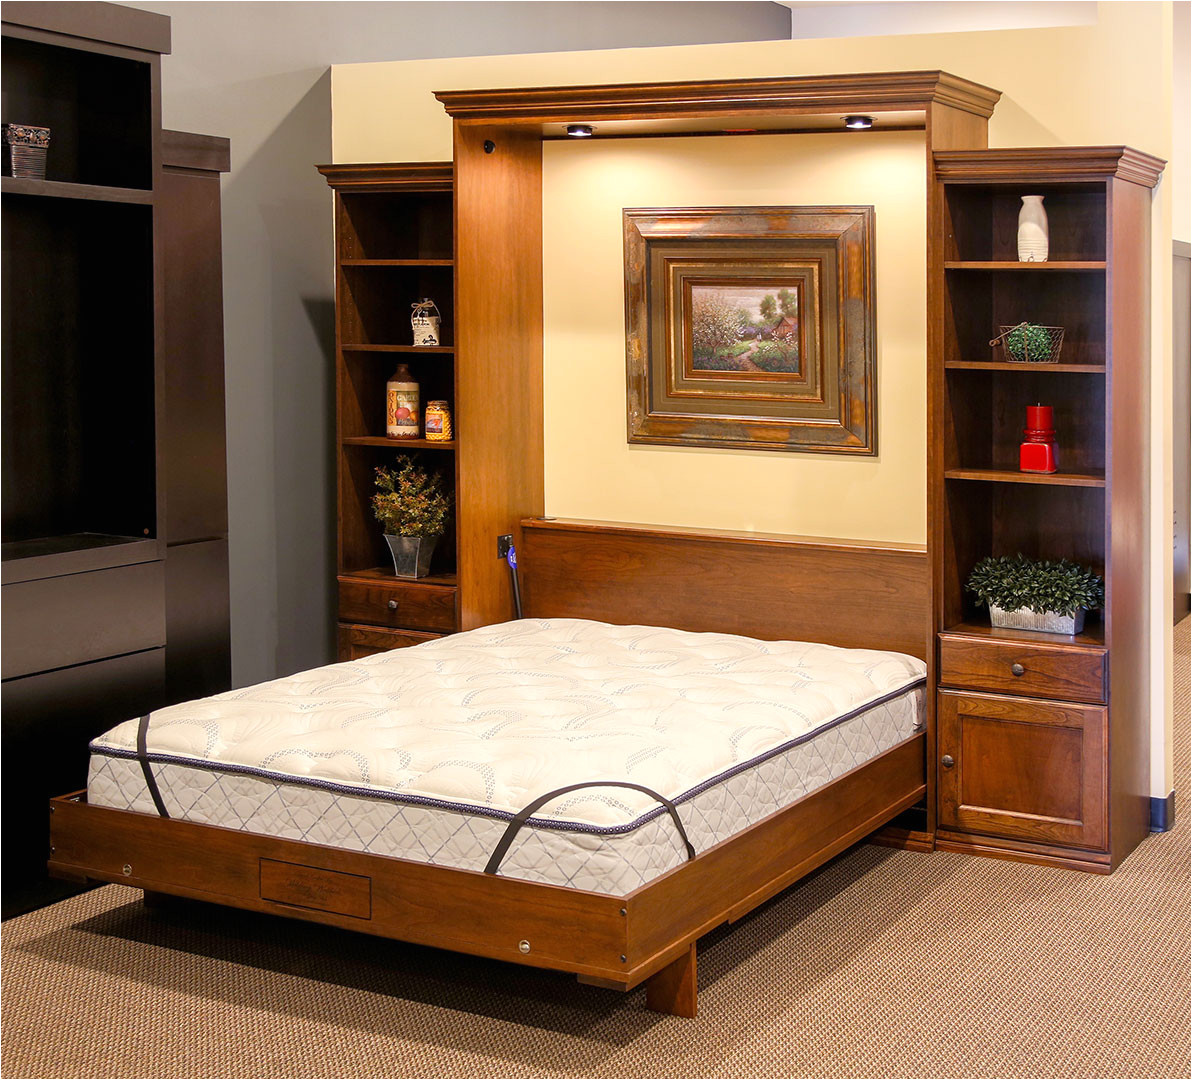 as you enter the back section of the store you ll find our extremely popular disappearing desk bed this disappearing desk is displayed in alder wood and